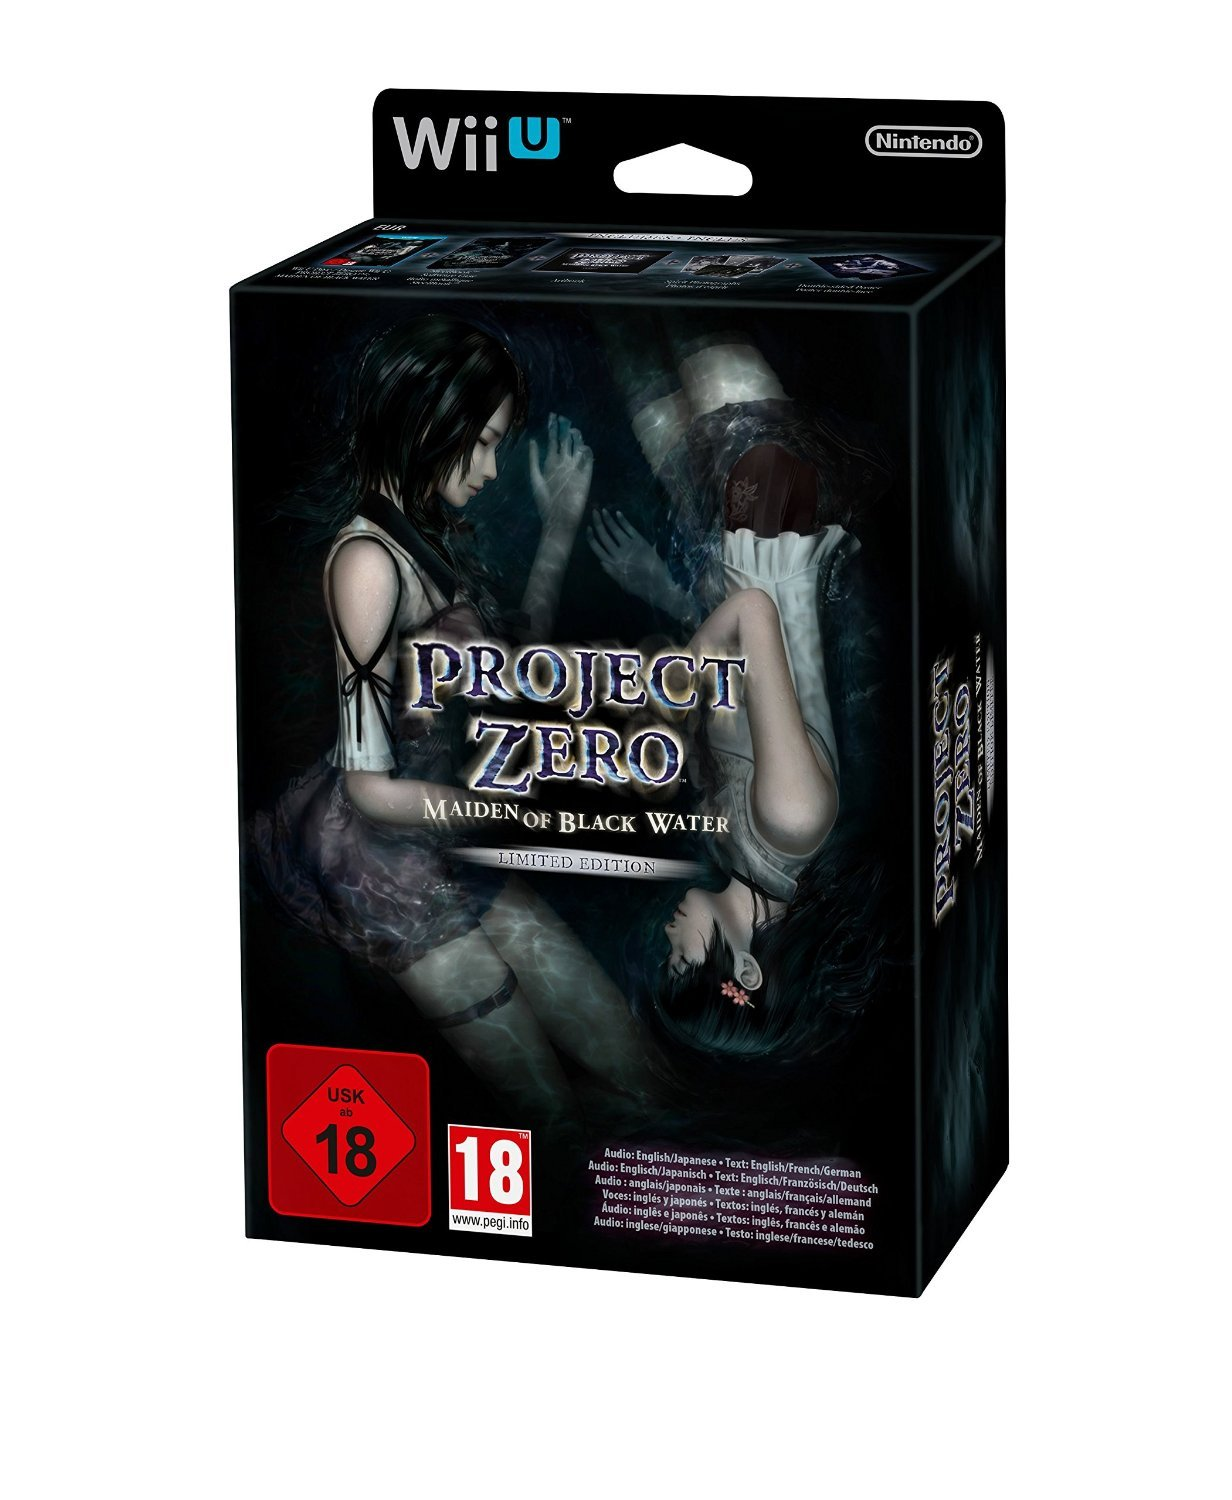 Amazon.com: Project Zero: Maiden of Black Water Limited Edition WII ...